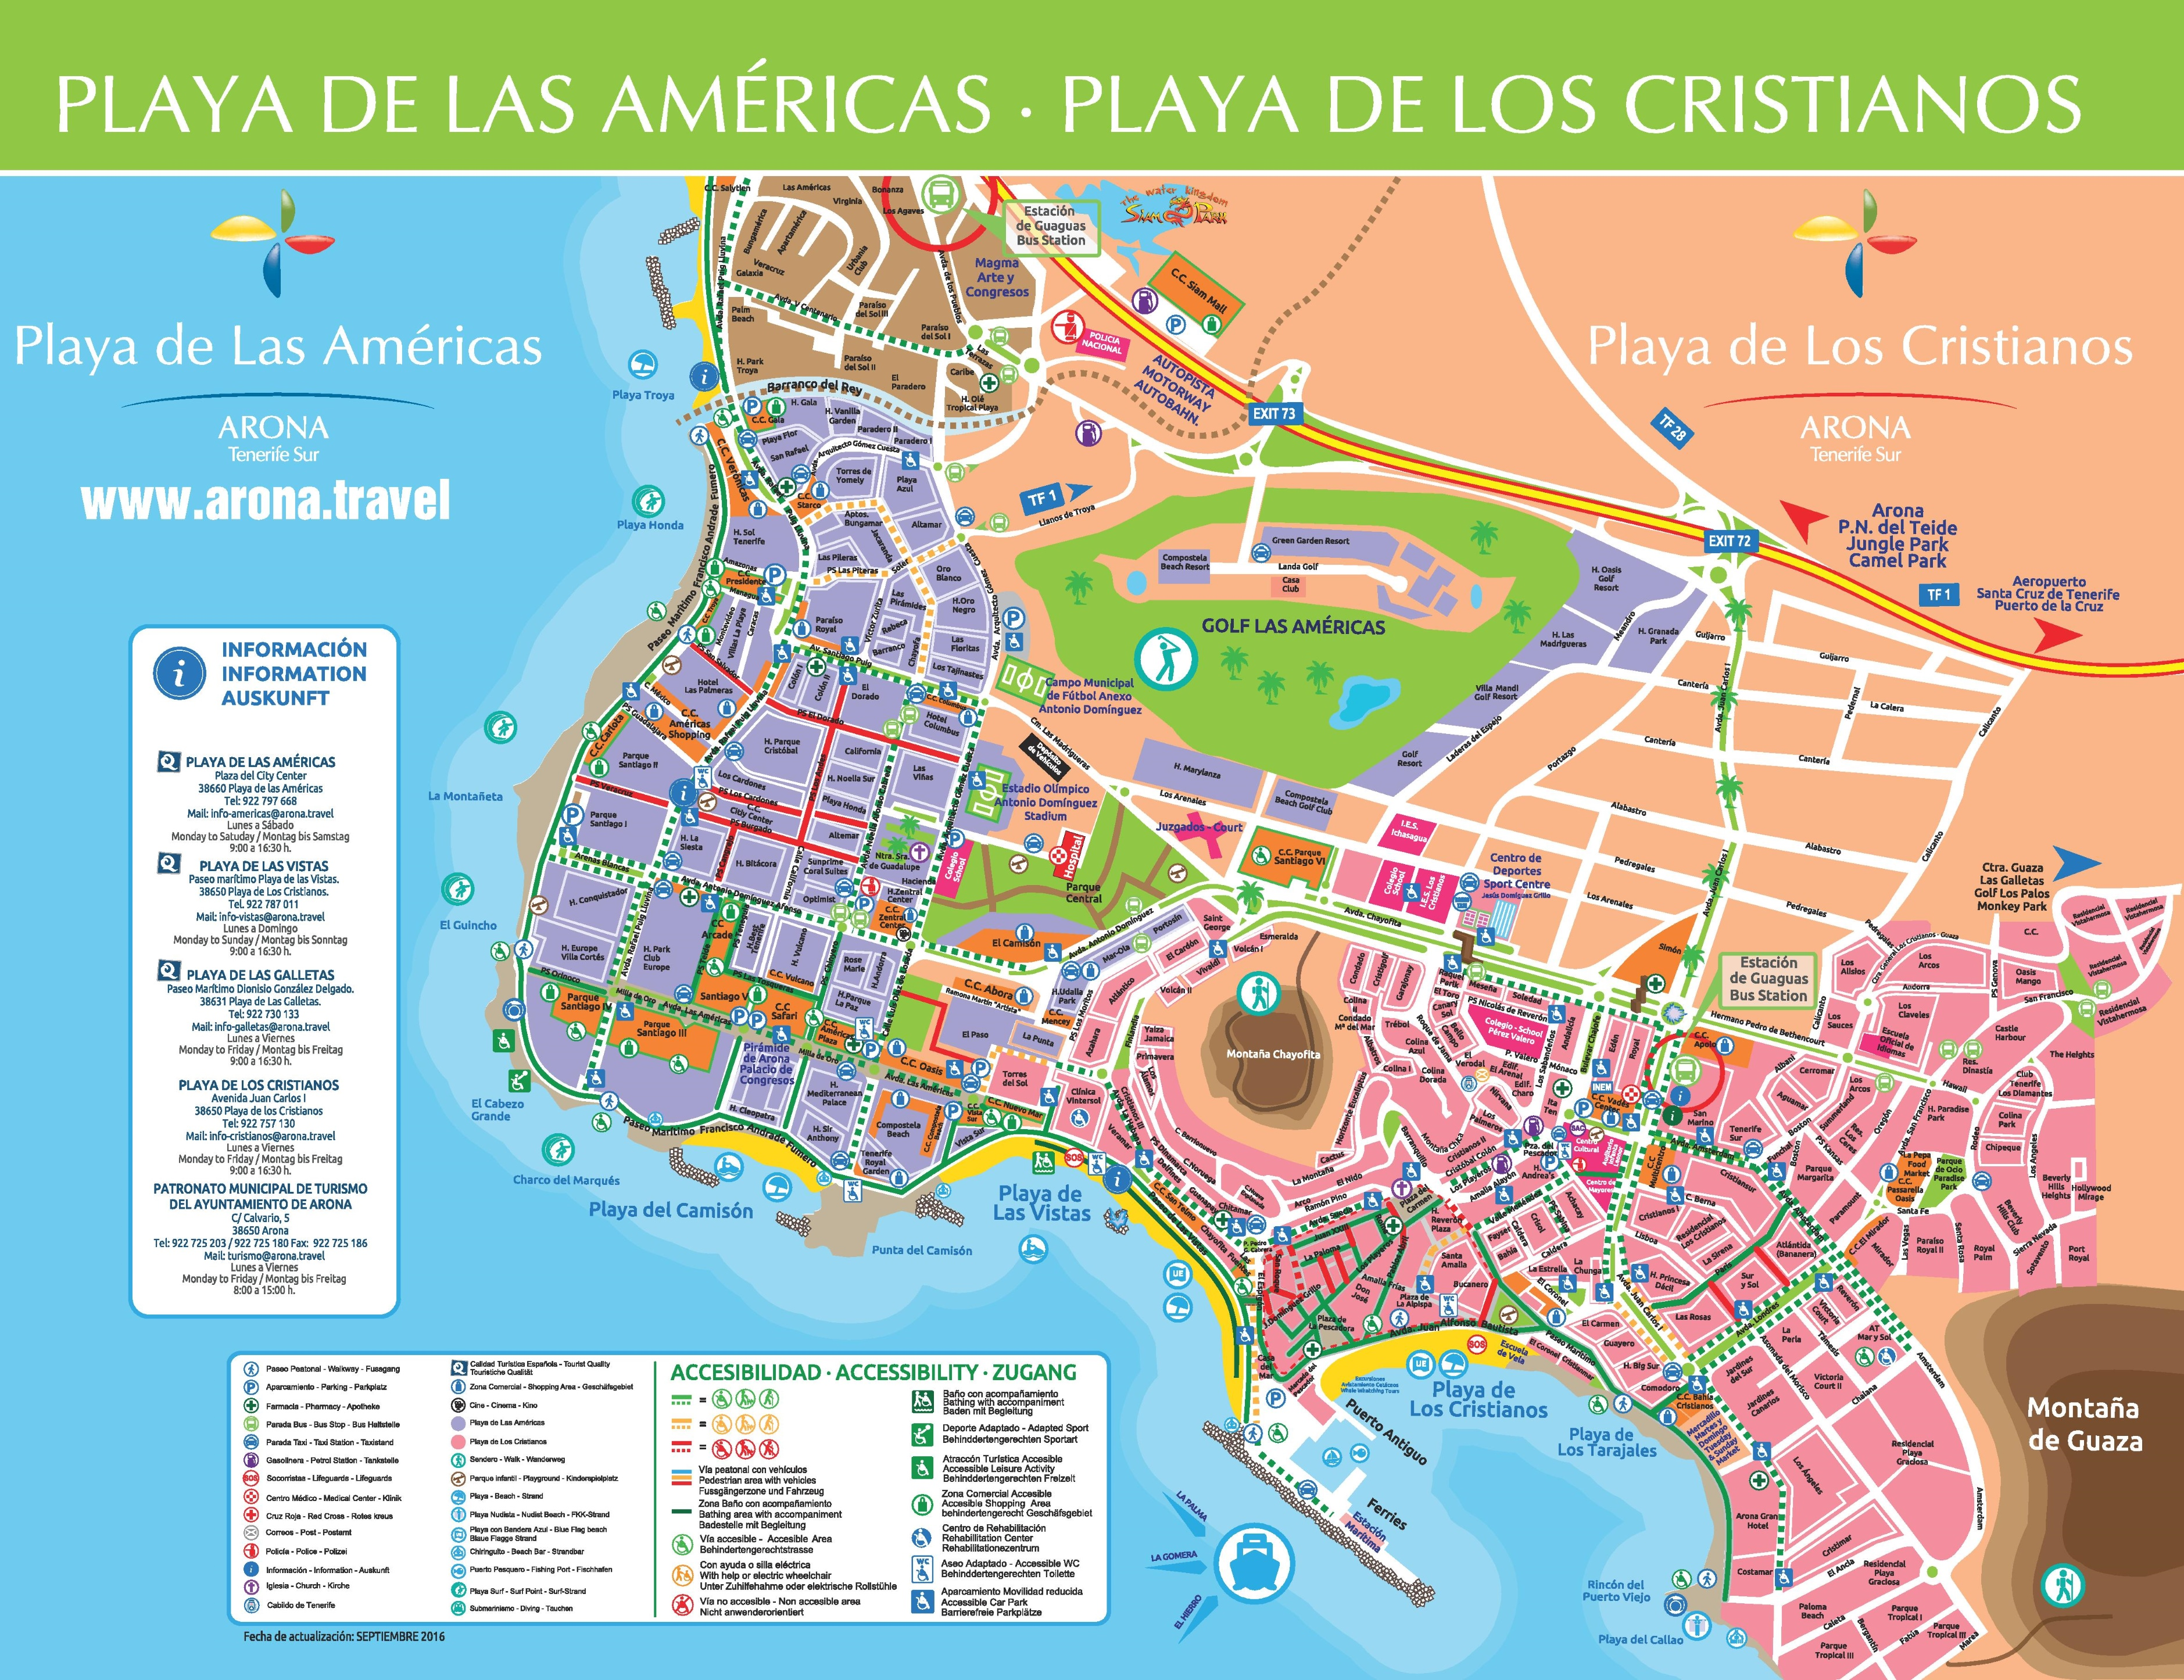 map of venice italy islands with Los Cristianos Playa De Las Americas Sightseeing Map on Map Of Venice And Mestre moreover Laos Tourist Map furthermore Favignana Tourist Map furthermore Italy Map also Summer In Pizzo Calabro Calabria Italy.